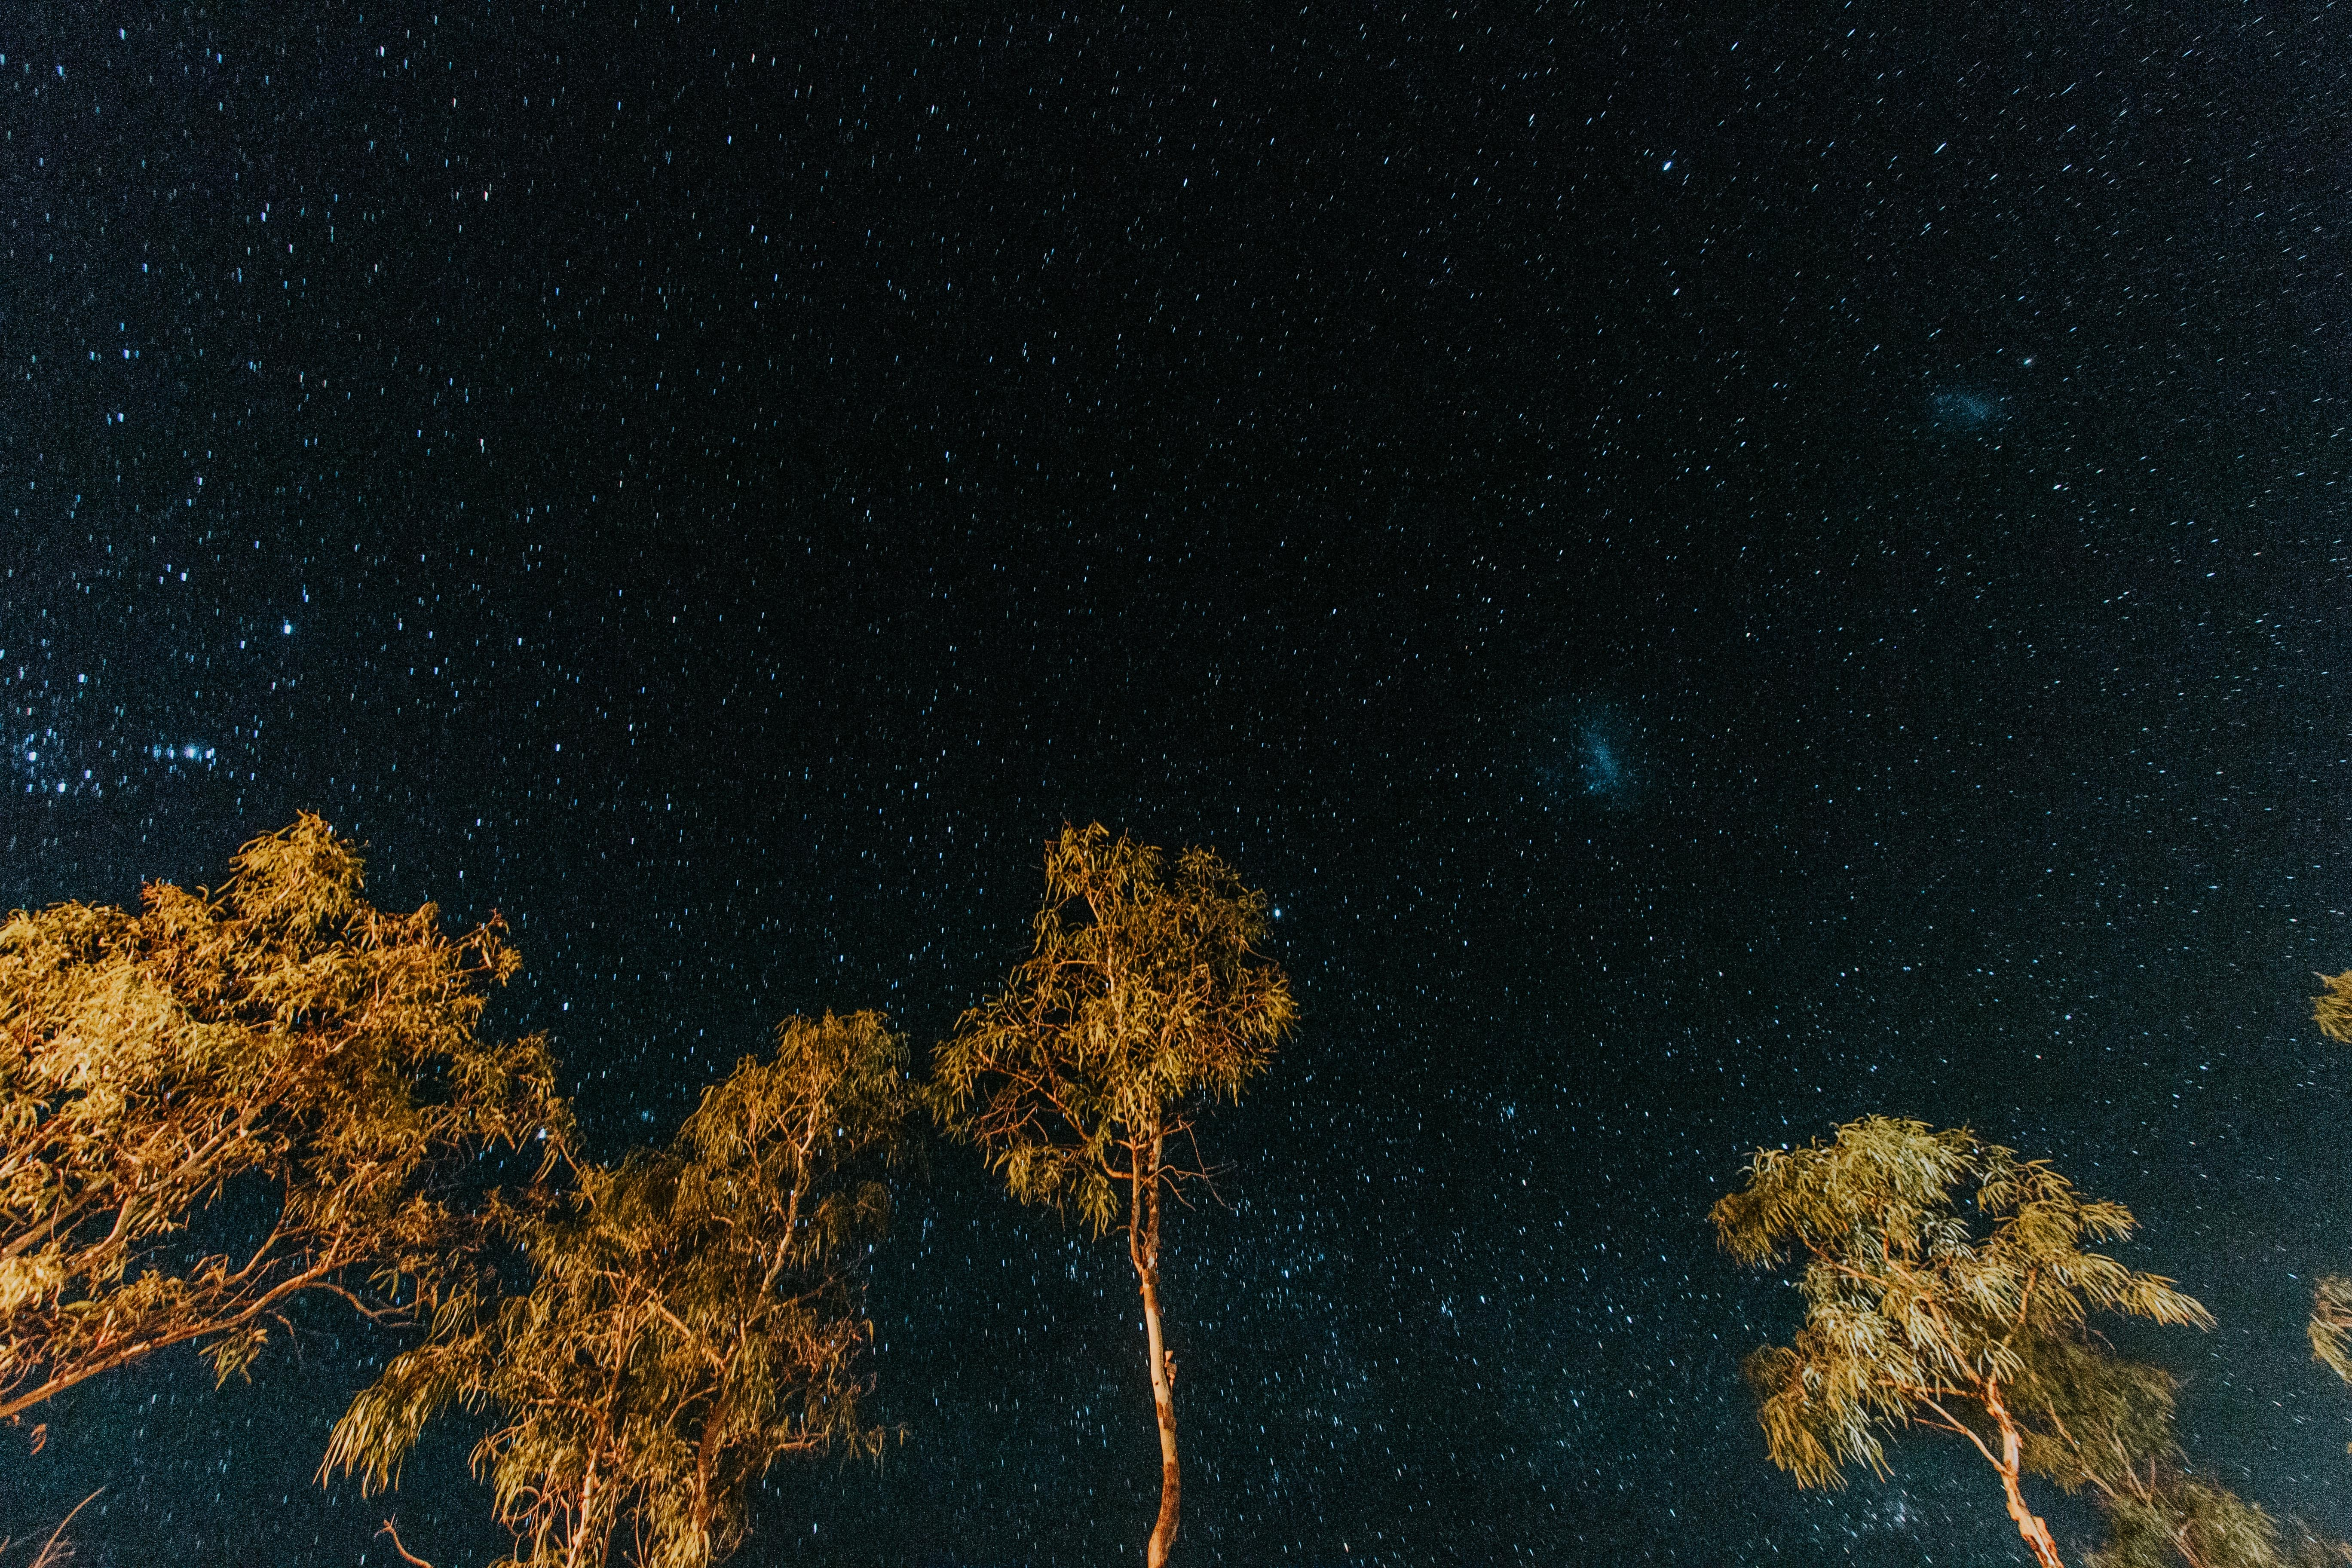 worm's eye view photography of starry night sky